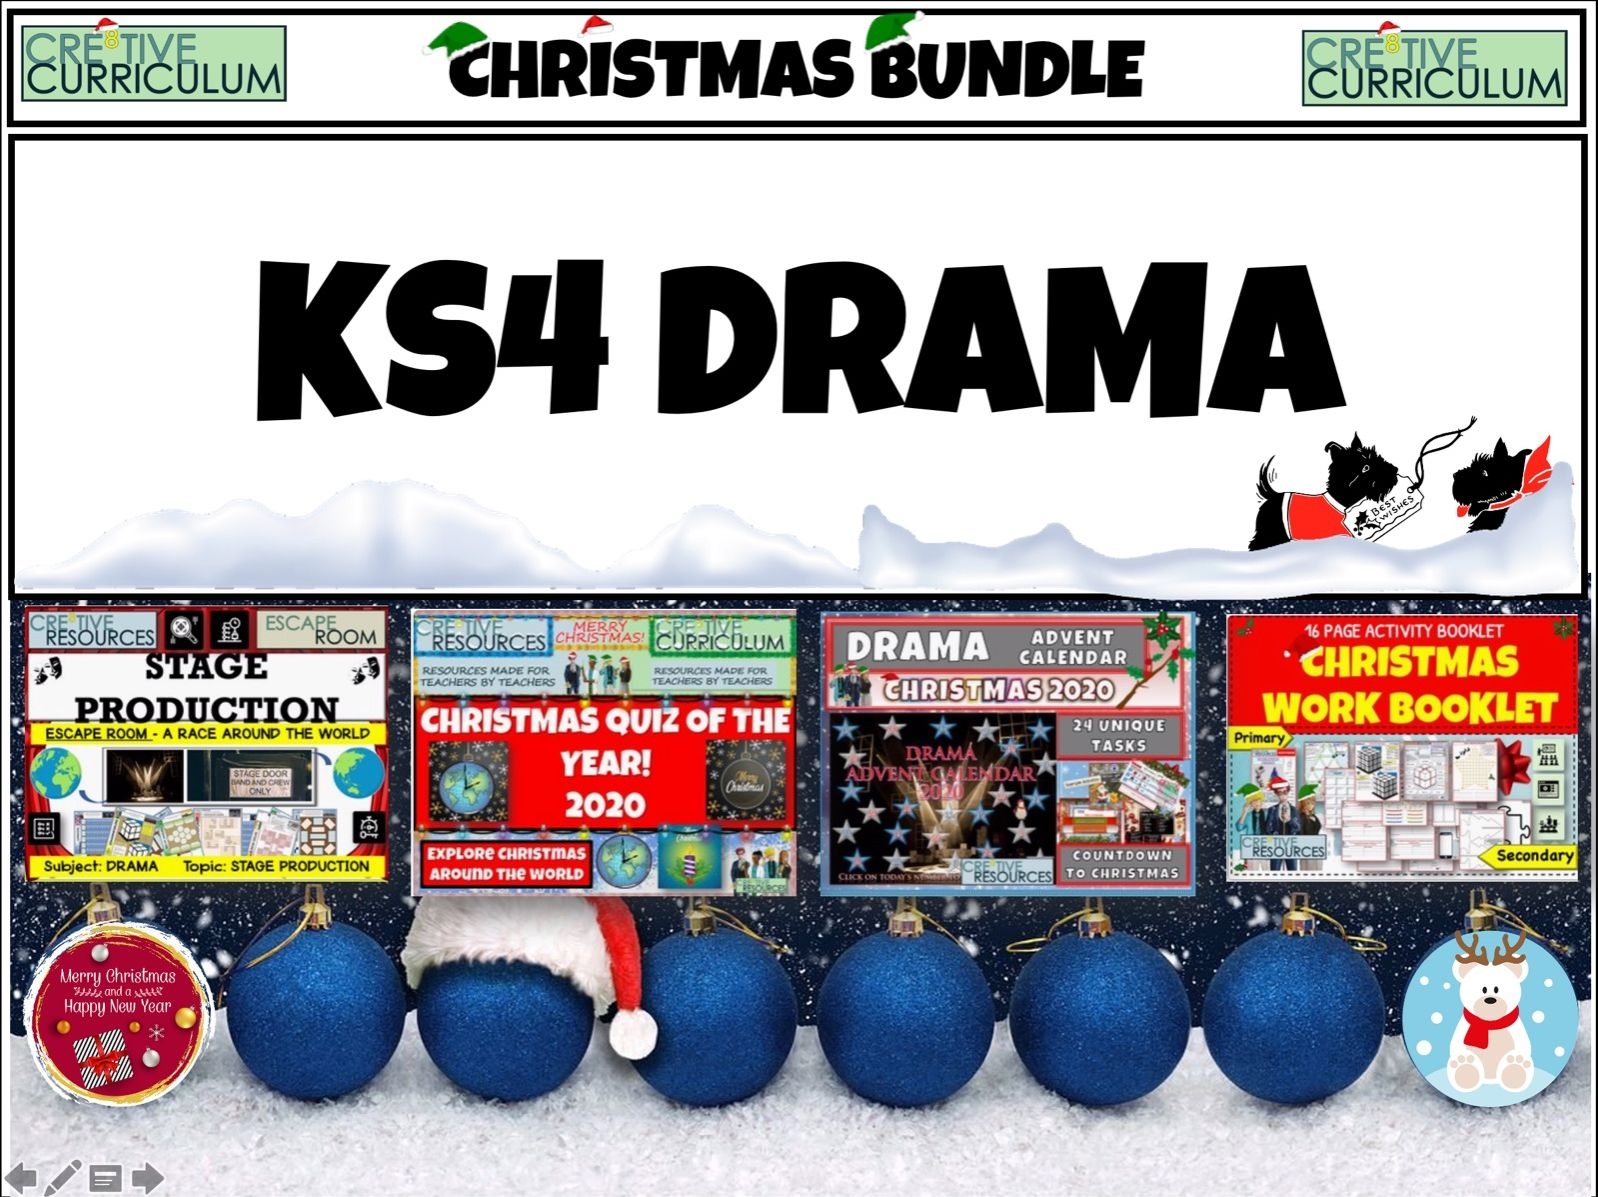 KS4 Drama Christmas Bundle